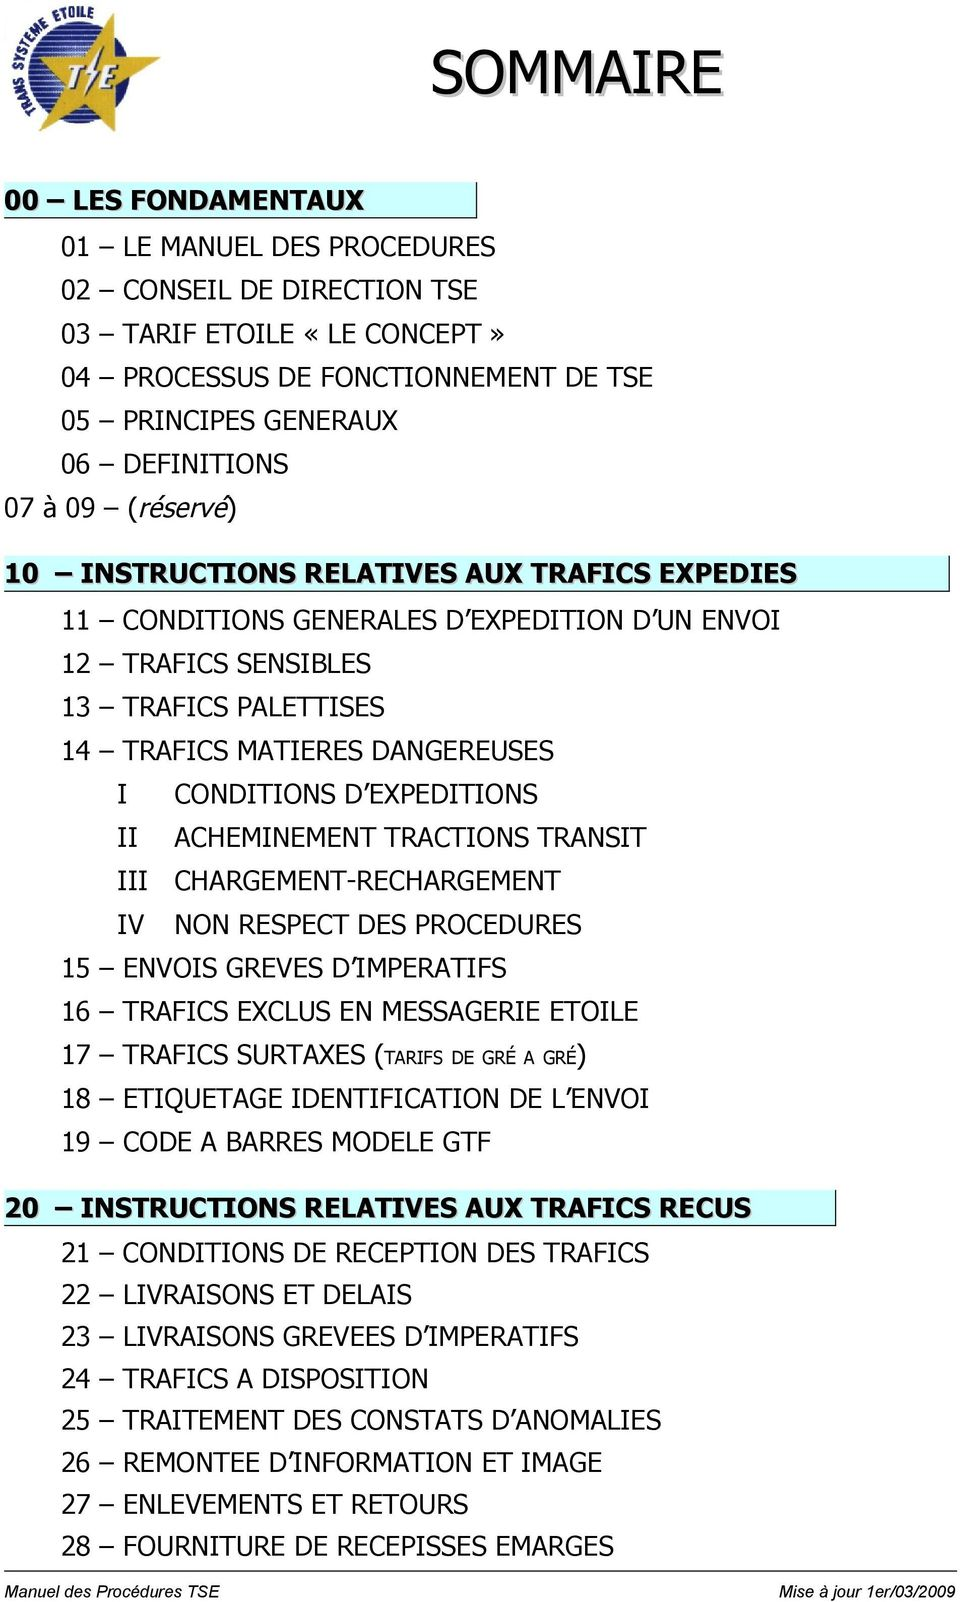 EXPEDITIONS II ACHEMINEMENT TRACTIONS TRANSIT III CHARGEMENT-RECHARGEMENT IV NON RESPECT DES PROCEDURES 15 ENVOIS GREVES D IMPERATIFS 16 TRAFICS EXCLUS EN MESSAGERIE ETOILE 17 TRAFICS SURTAXES